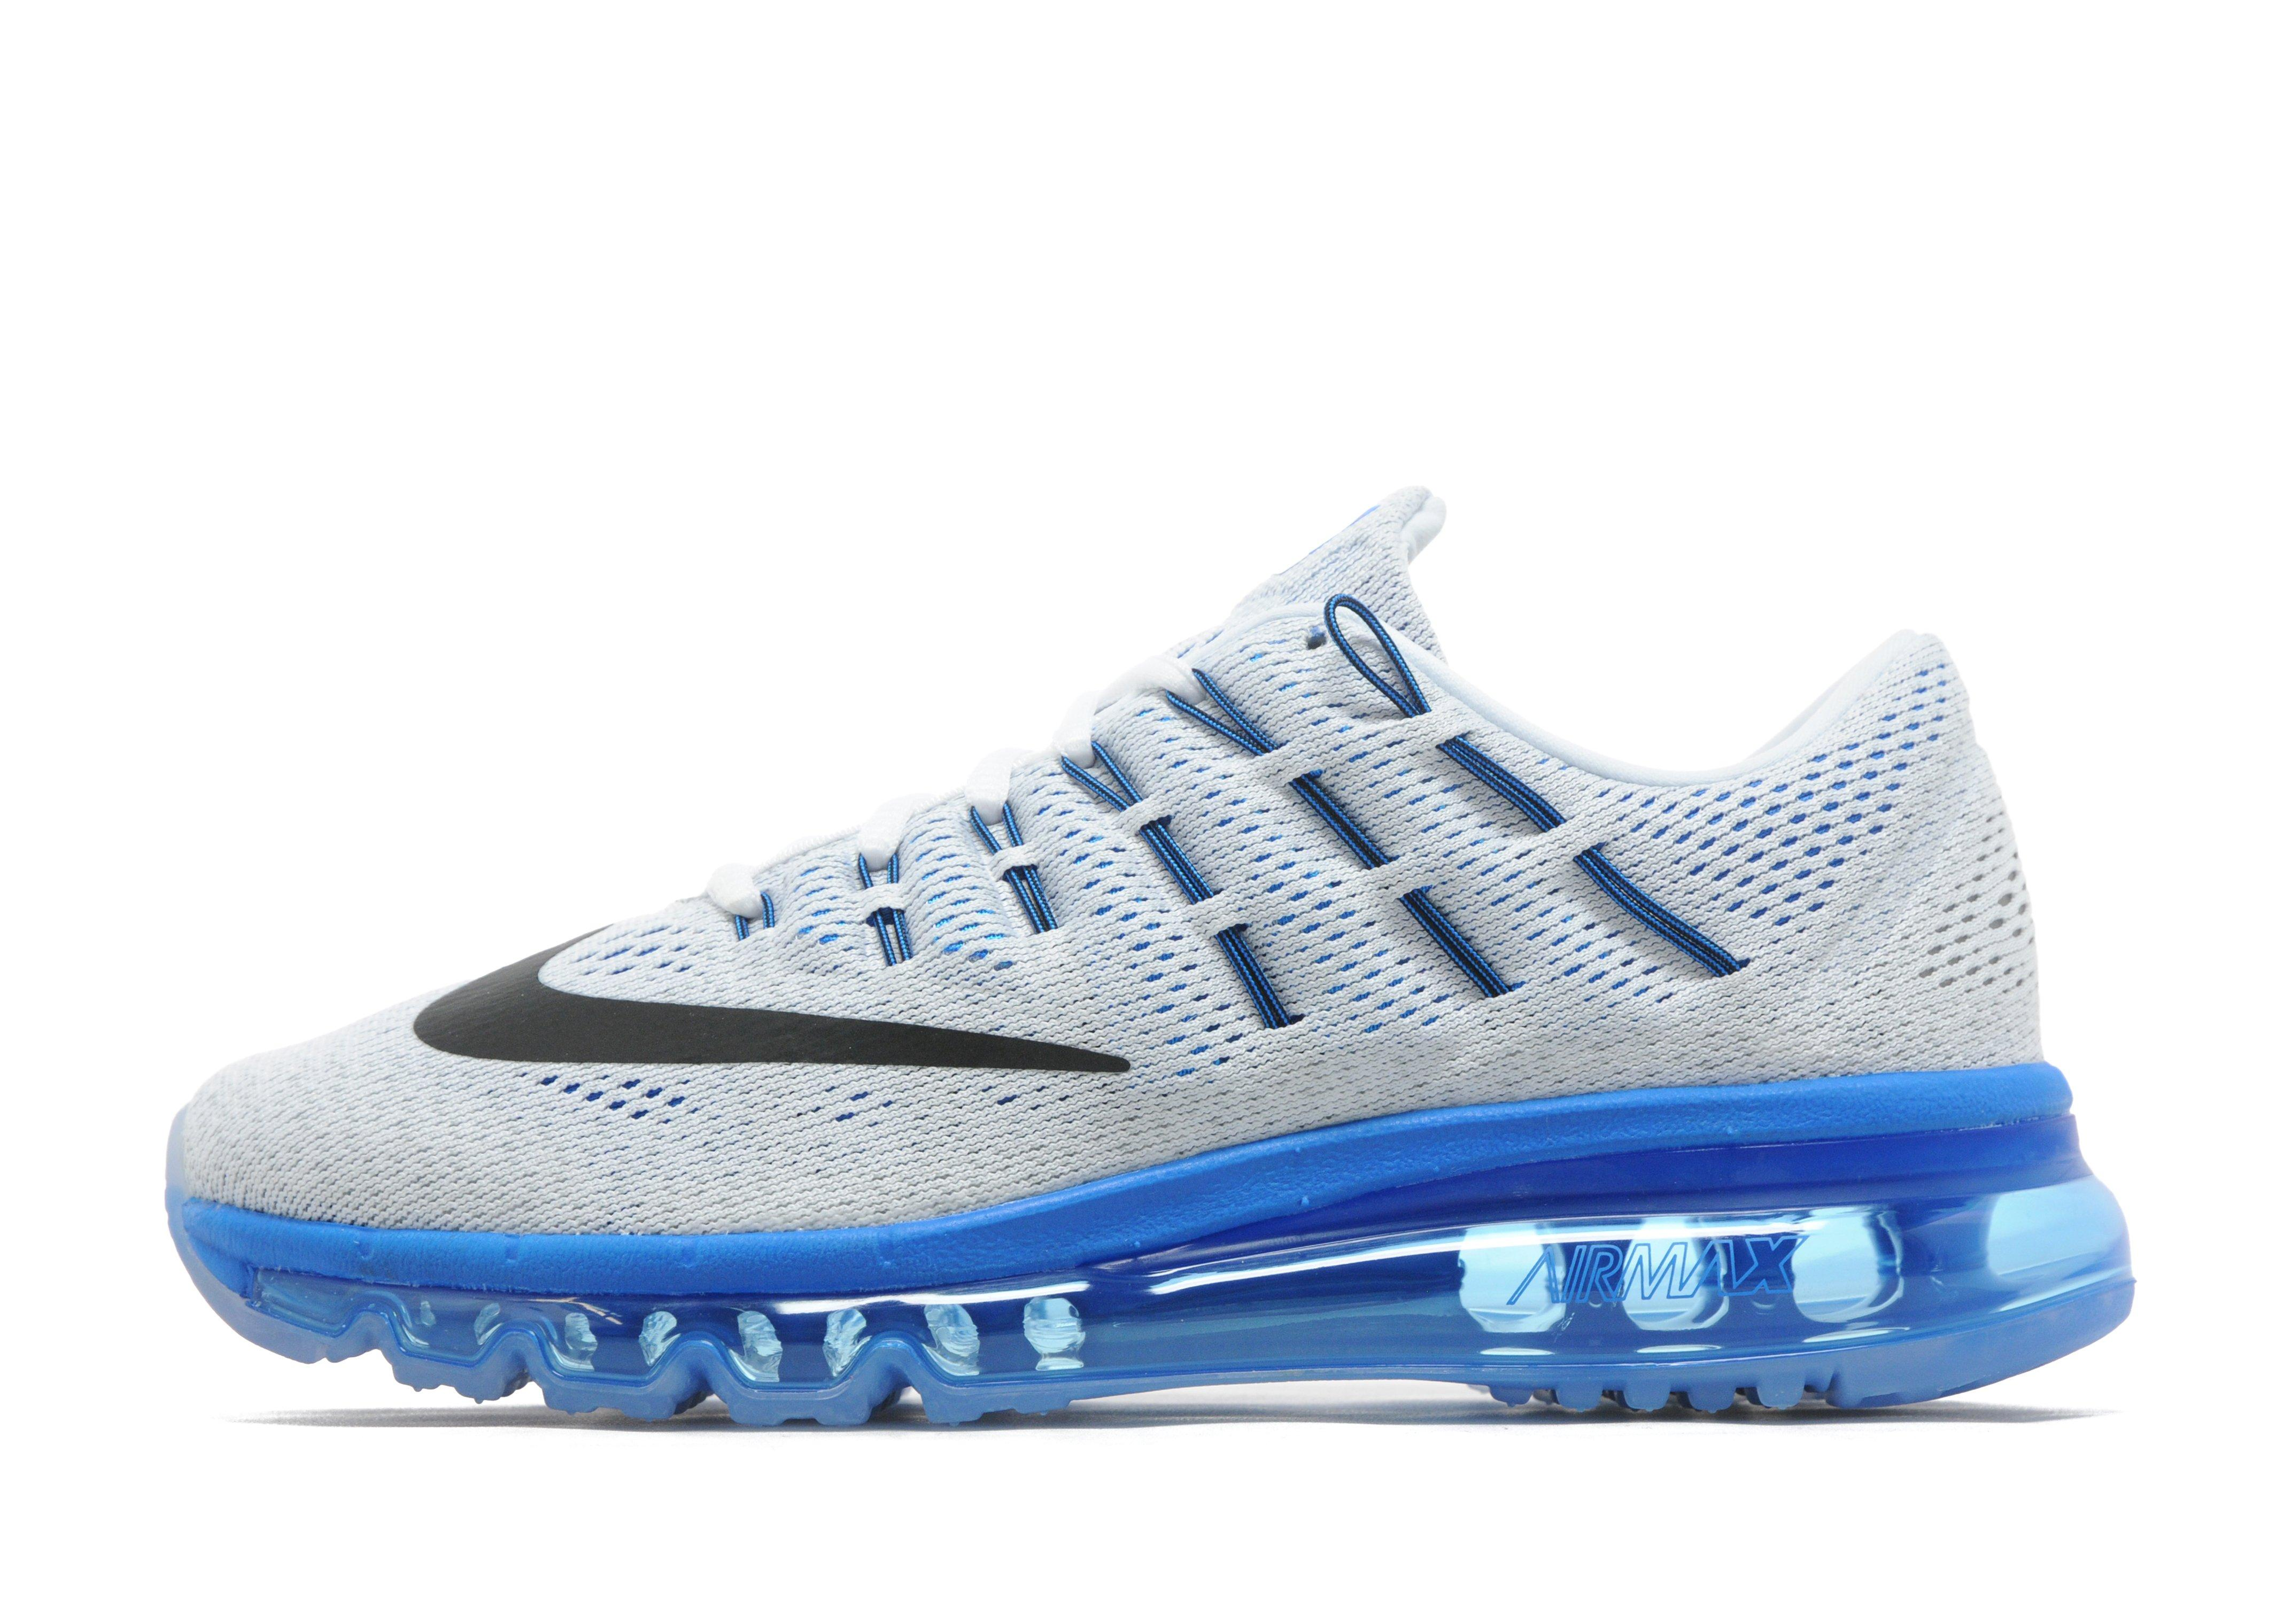 reputable site cd215 ab815 Nike Air Max 2016 Maat 42